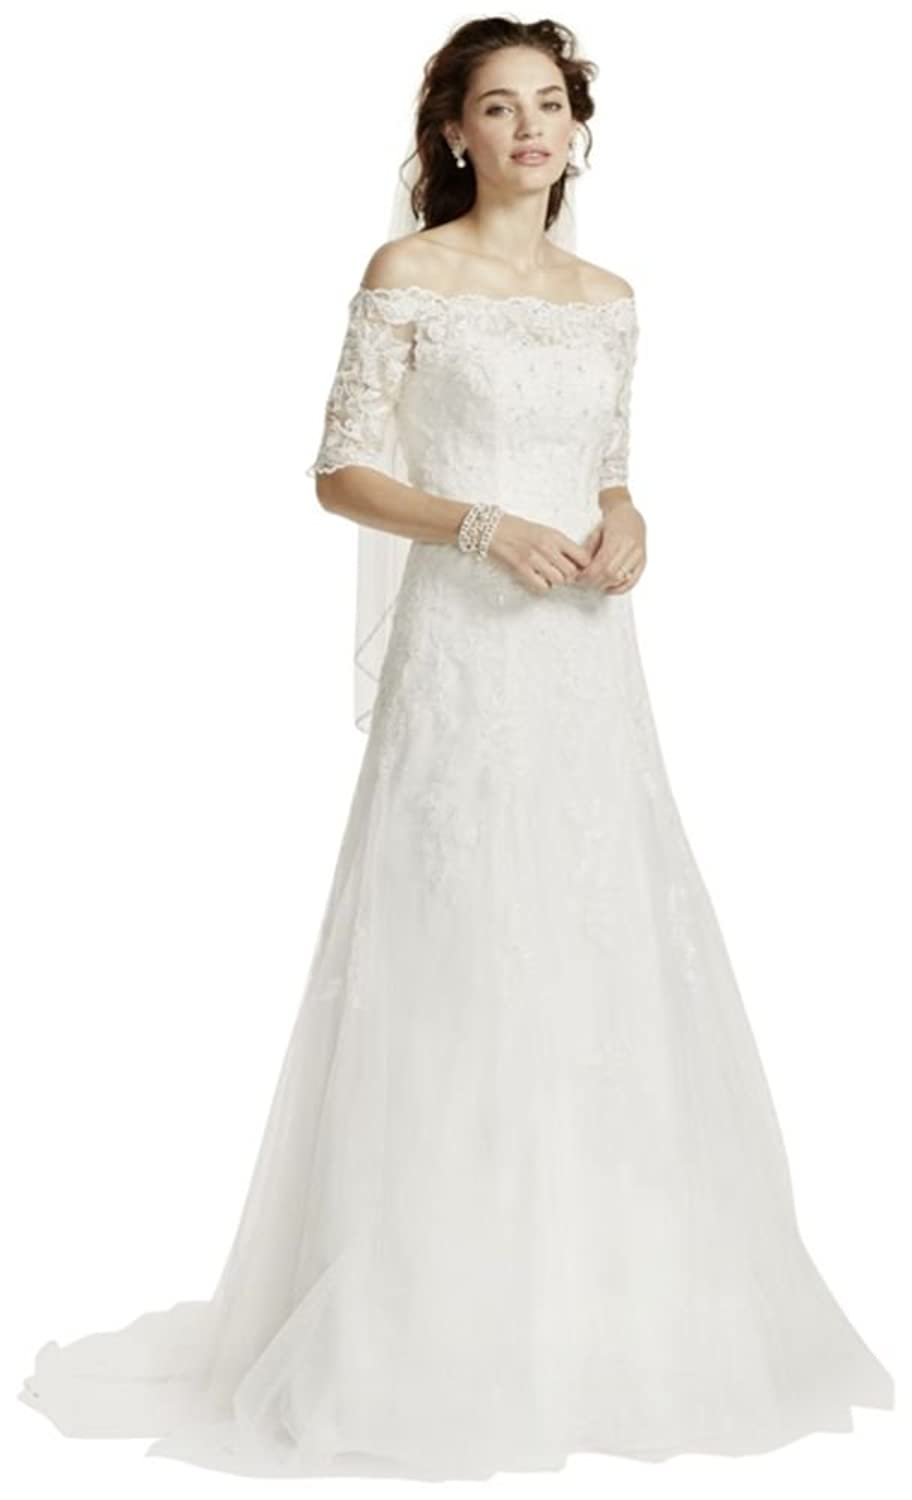 Davids Bridal Sample Off The Shoulder Lace Wedding Dress With